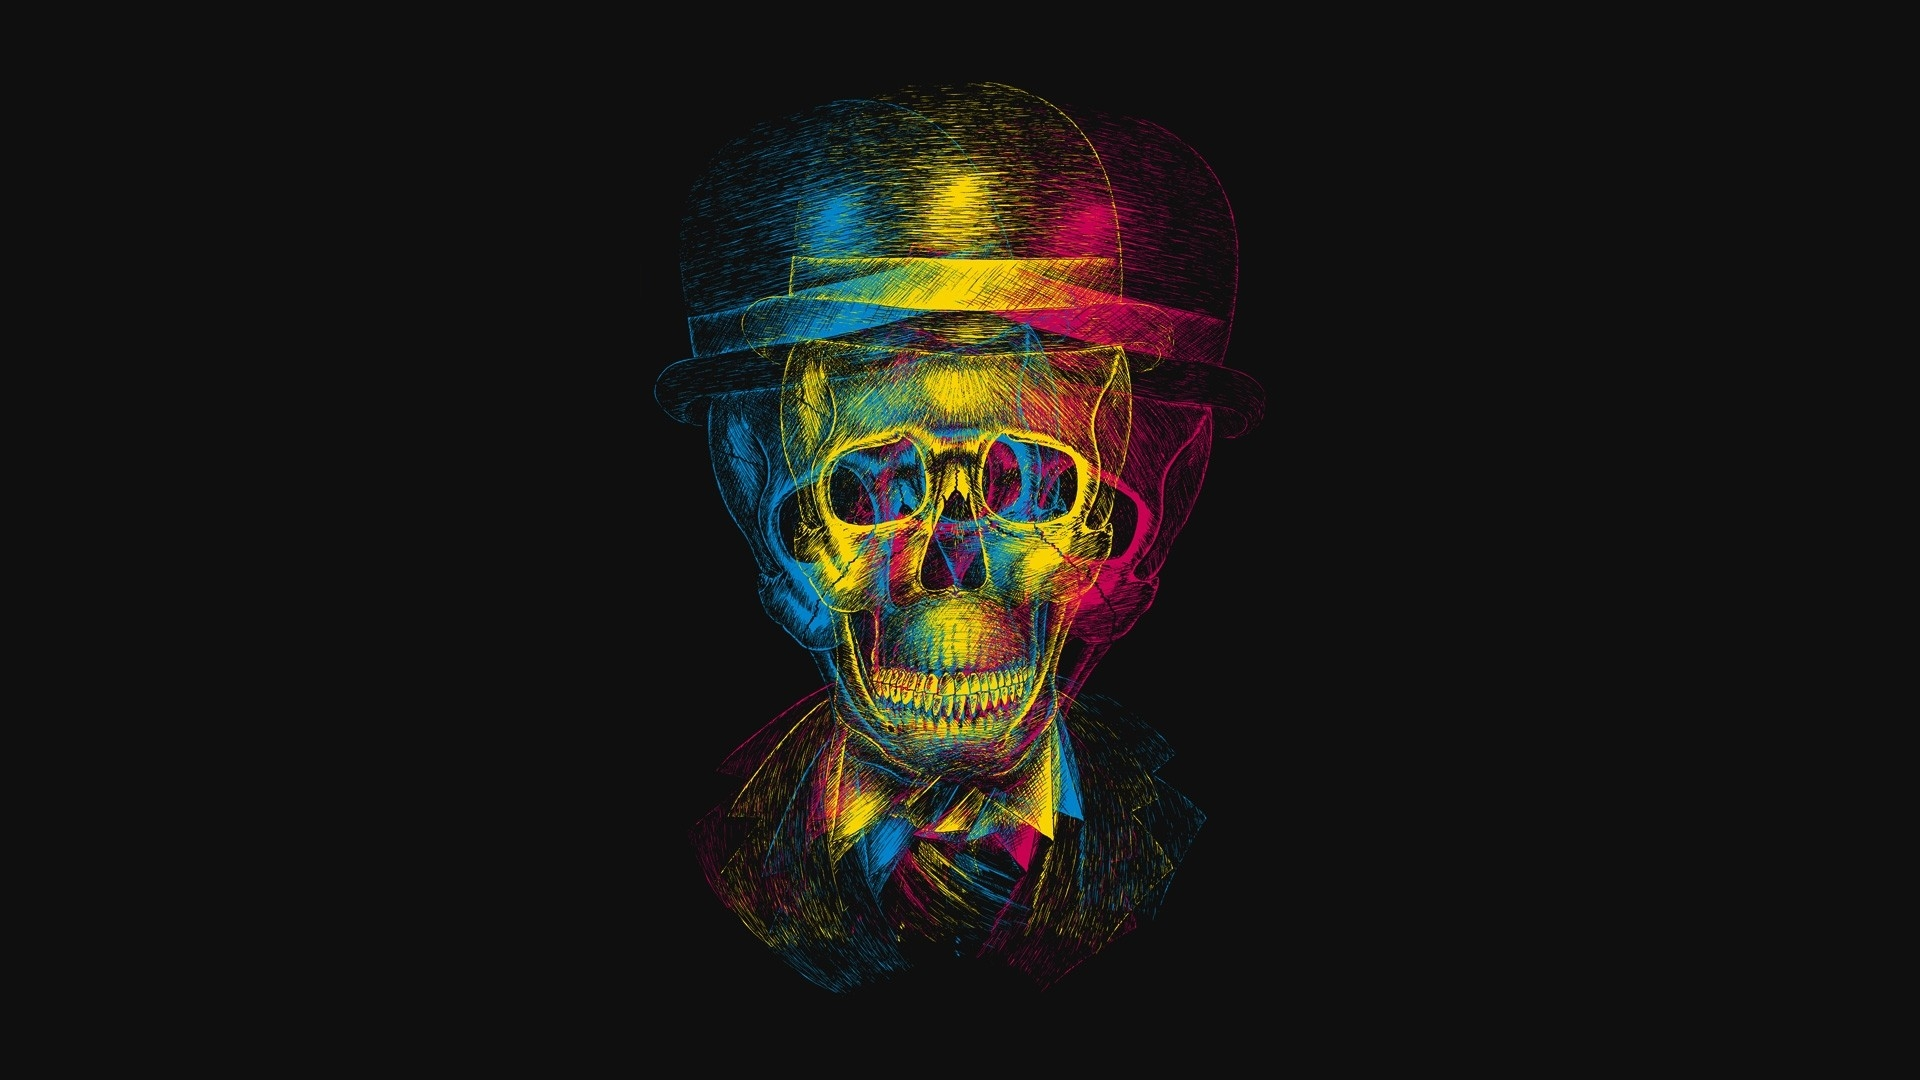 skull wallpaper wallpapers hd - photo #45